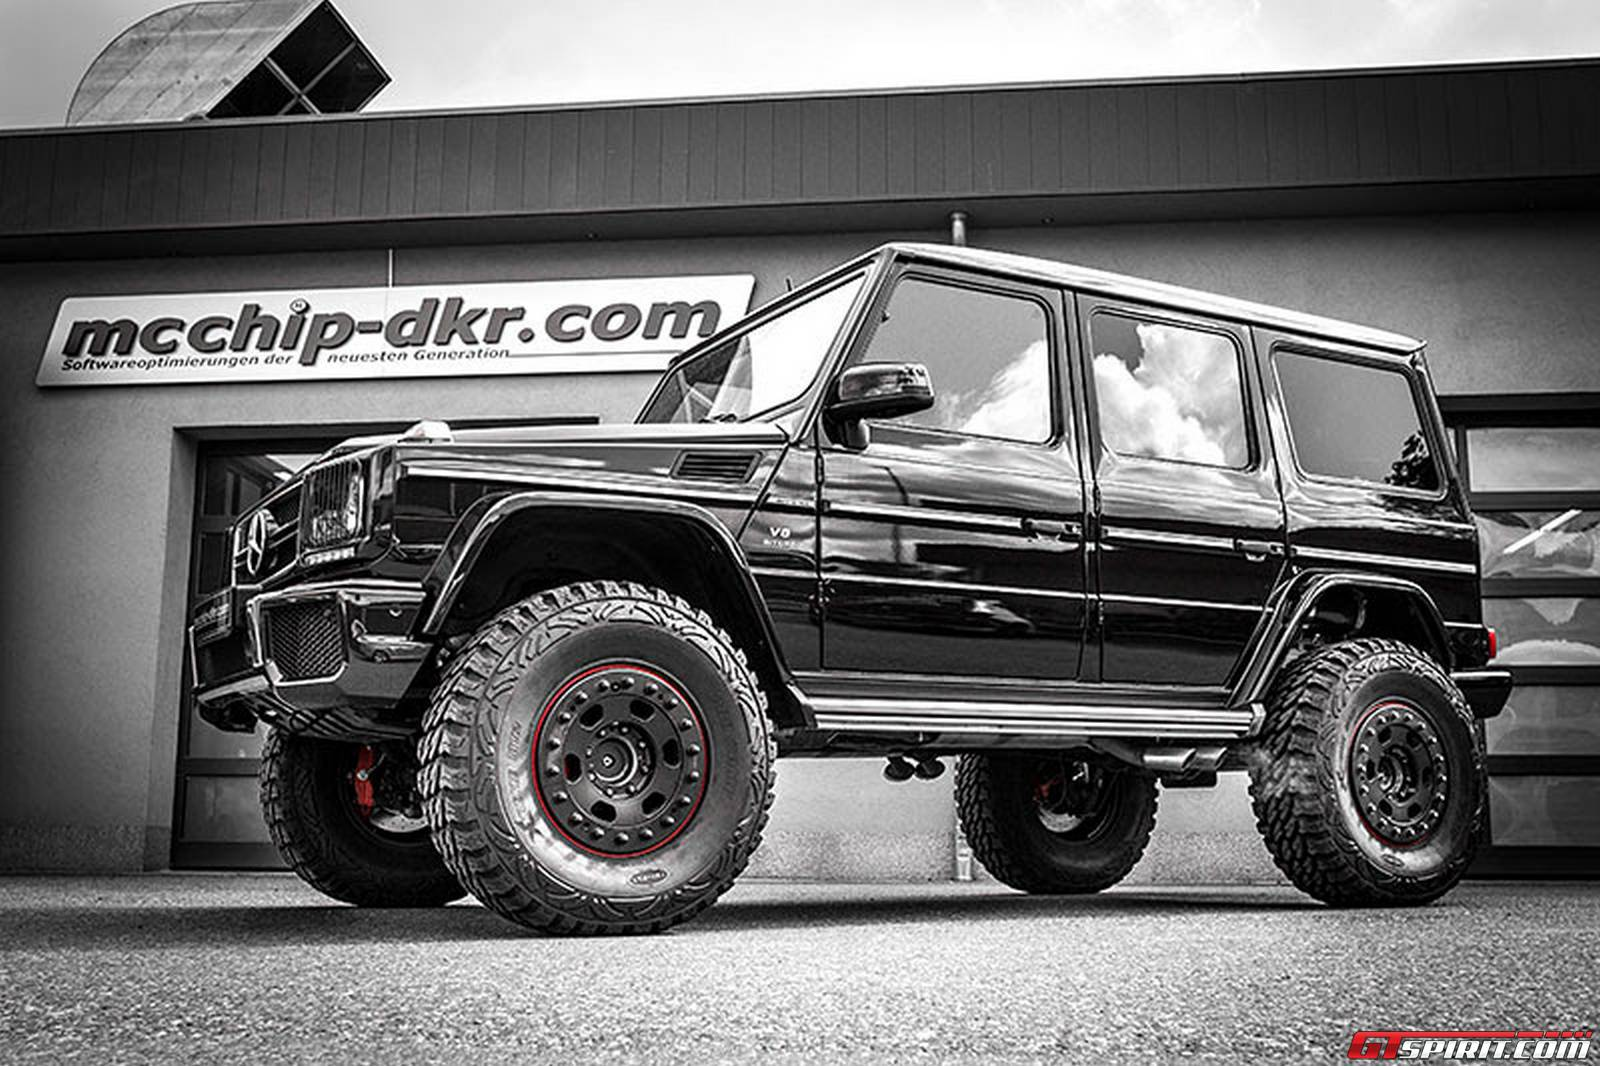 Official 810hp mercedes benz g63 amg by mcchip dkr gtspirit for Mercedes benz g63 amg for sale